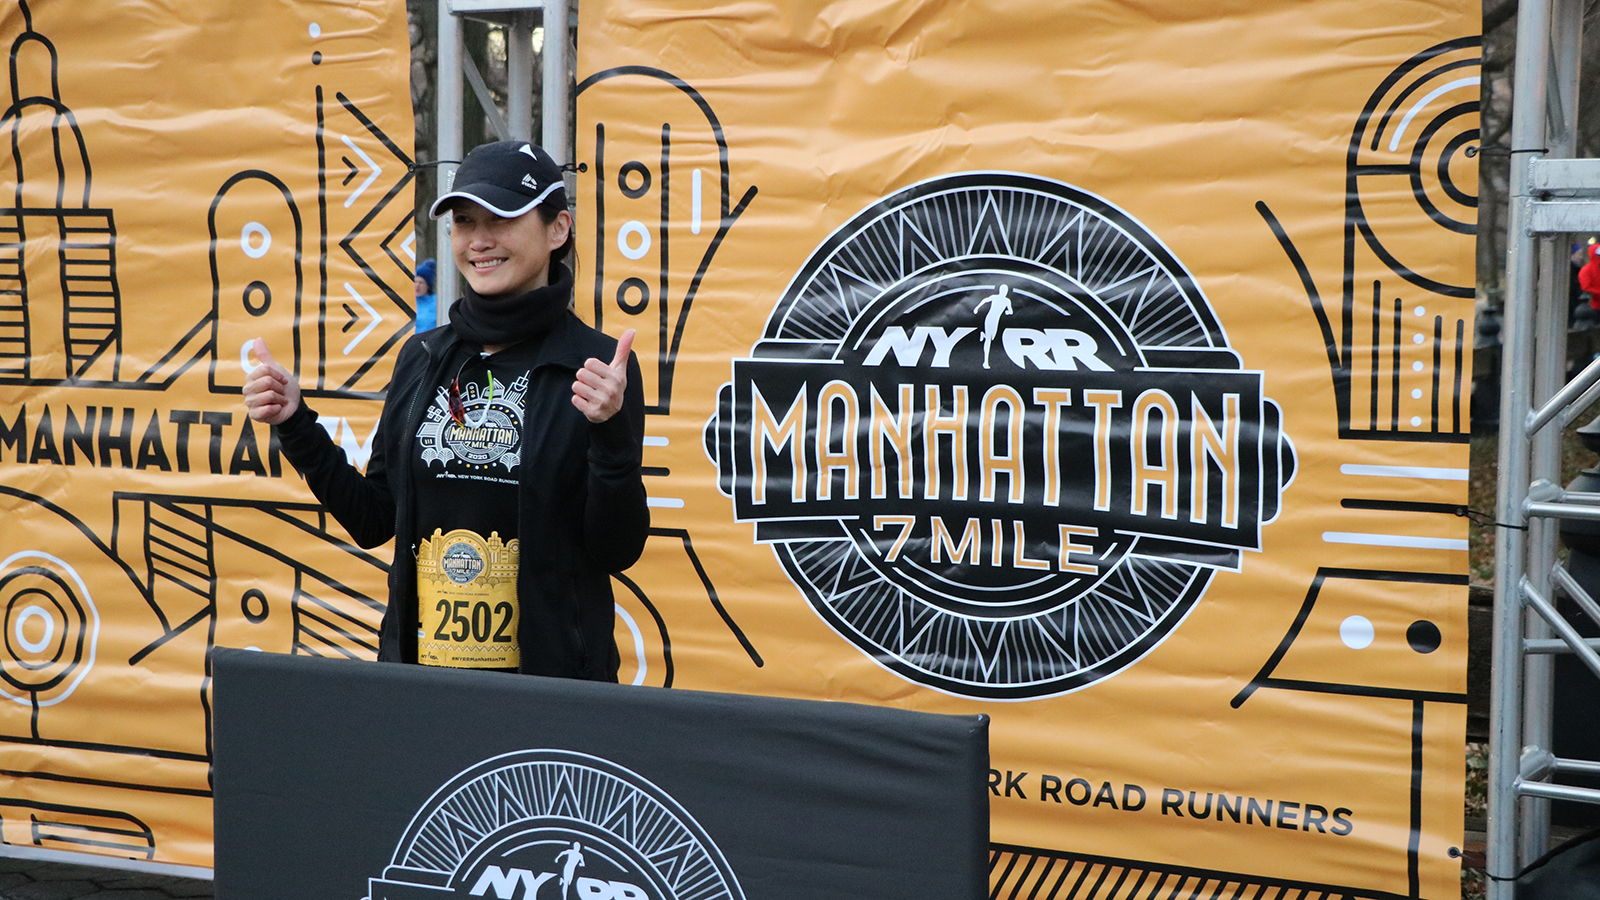 A runner posing in front of the NYRR Manhattan 7 Mile banner